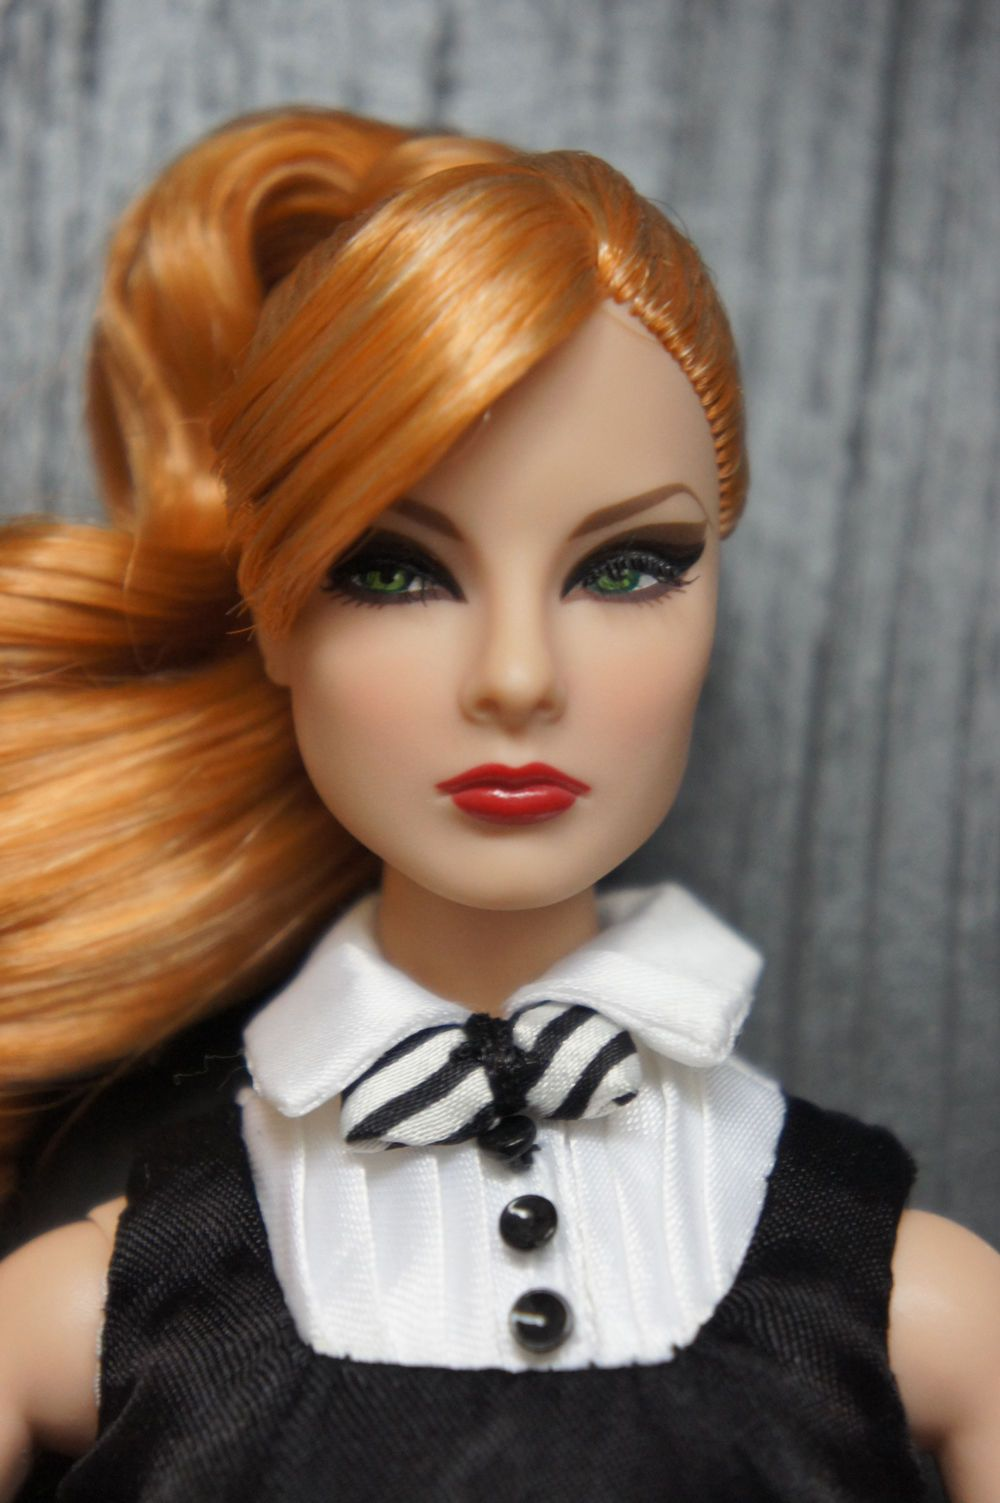 Elenpriv OOAK Outfit for Fashion Royalty FR2 Doll Clothes 15 eBay 10